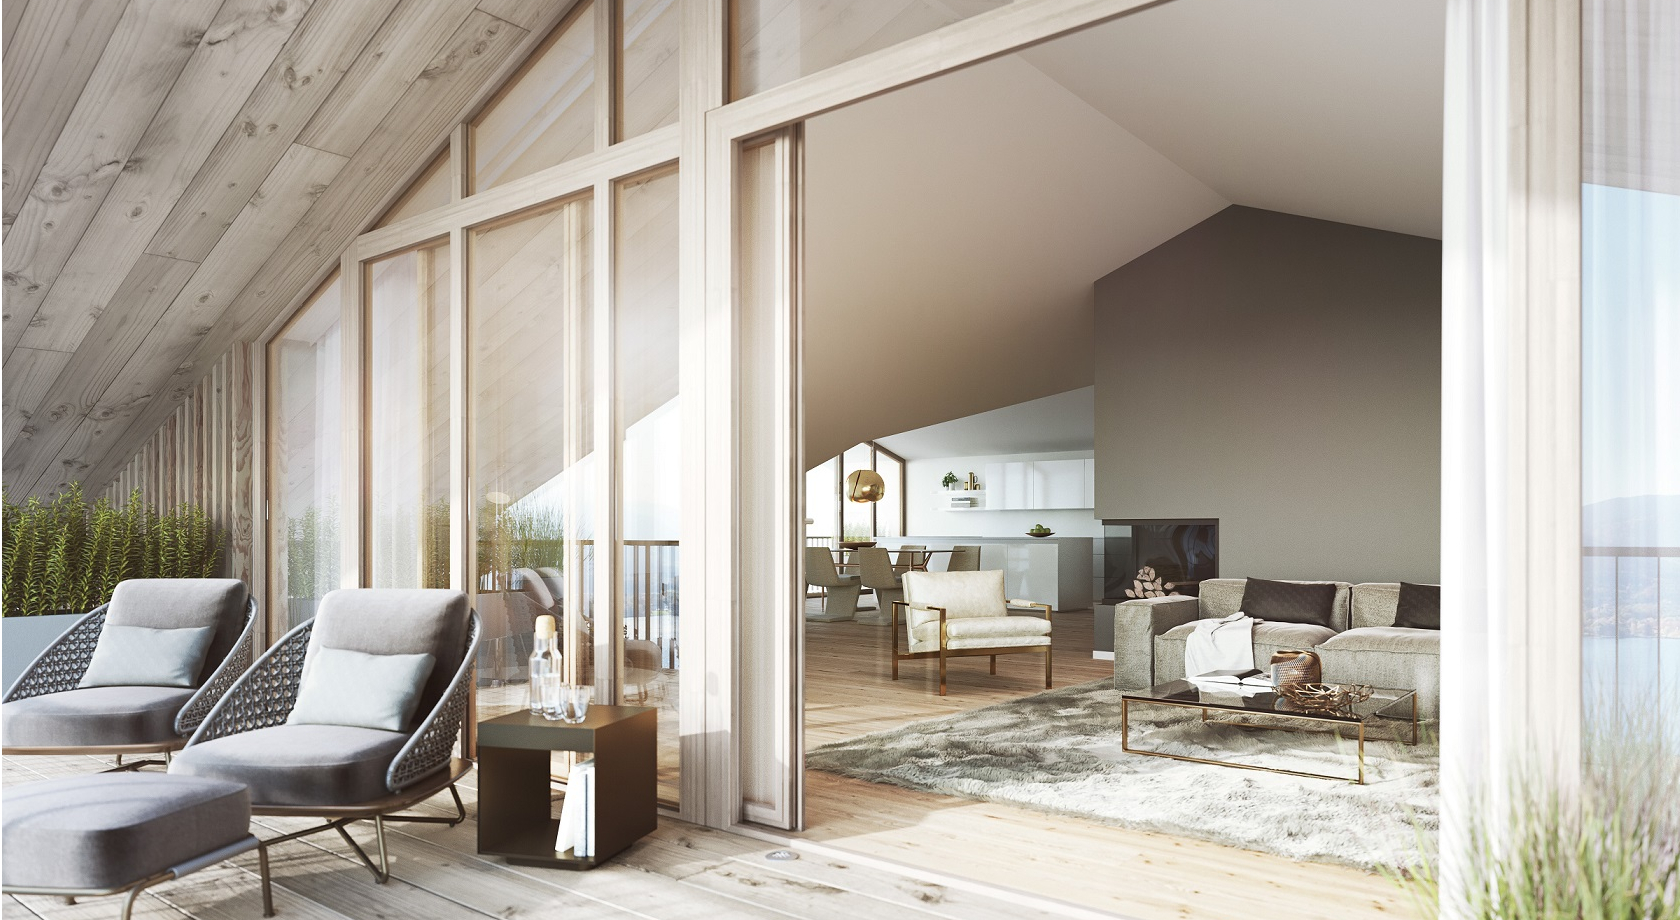 LHOMES-Tegernsee-Penthouse-1680x920-Eigentumswohnung